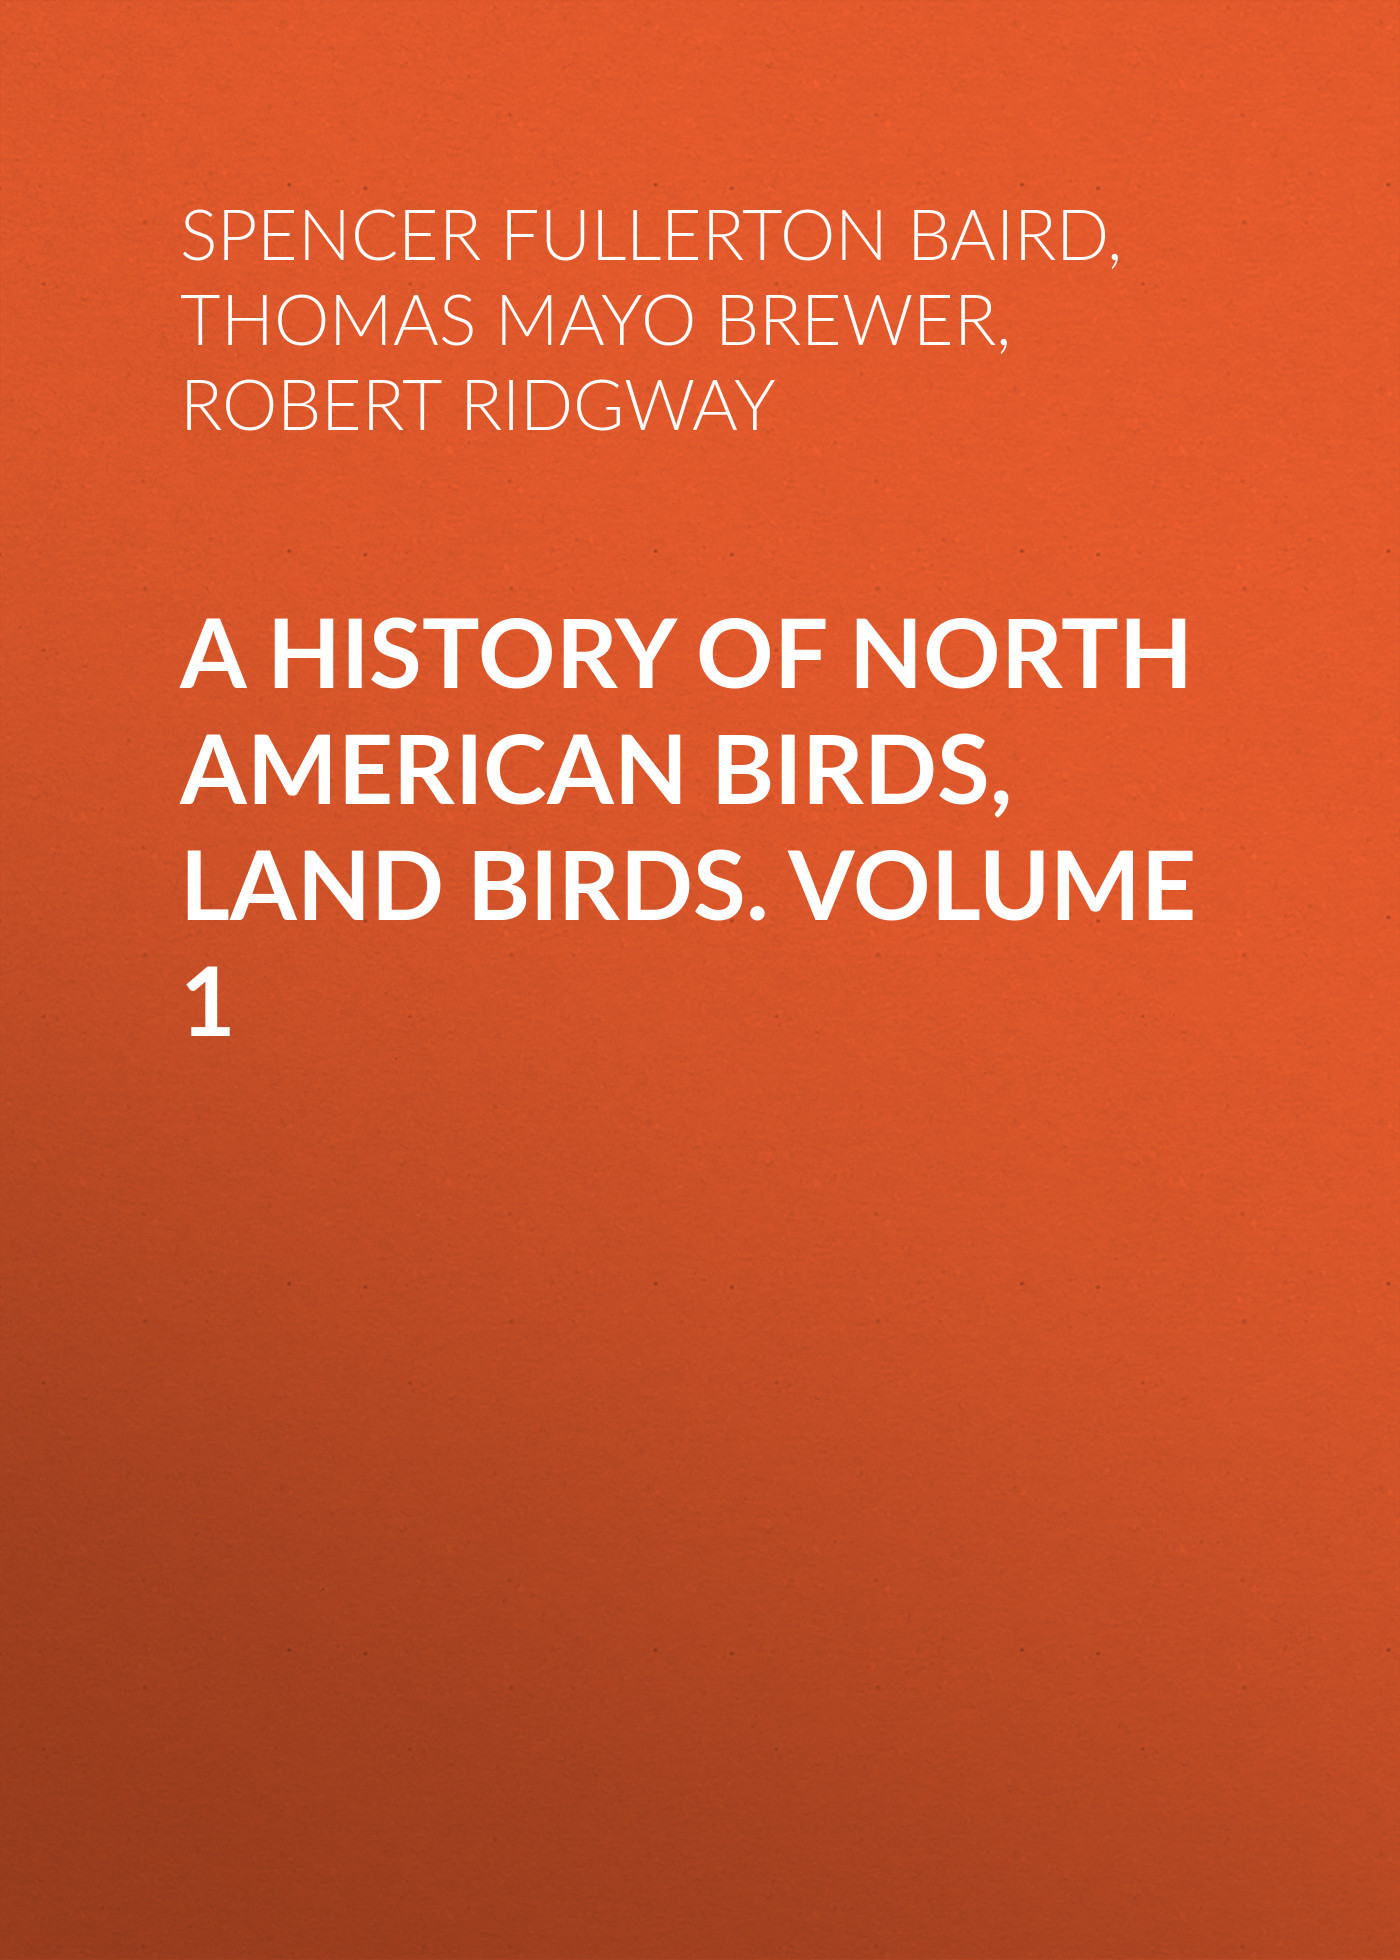 A History of North American Birds, Land Birds. Volume 1